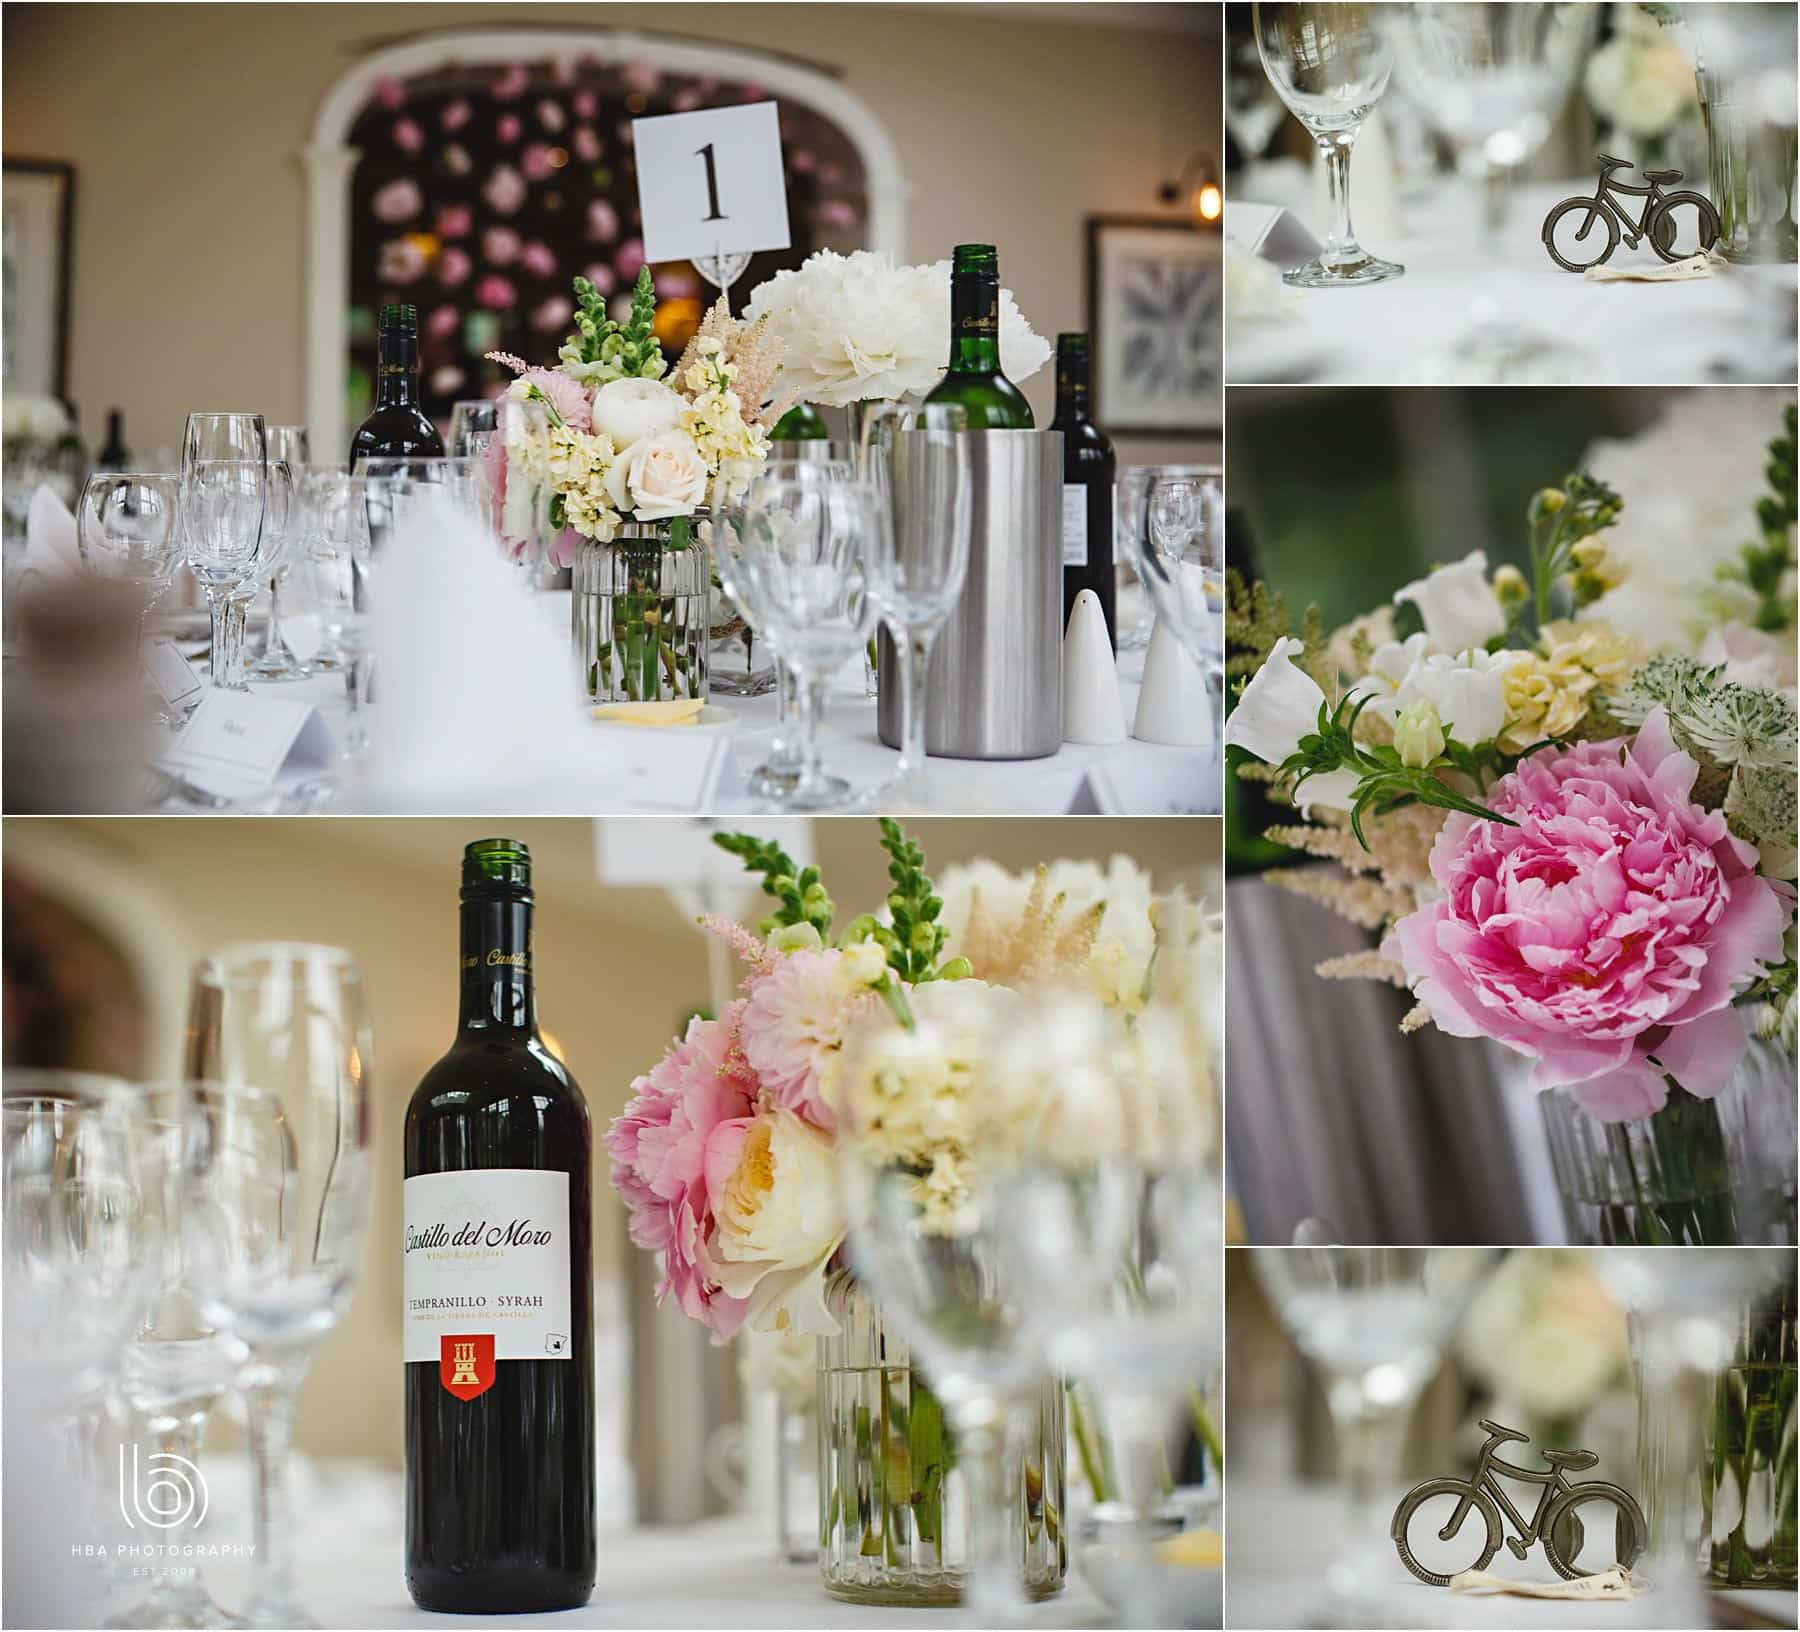 the gorgeous wedding breakfast decorations